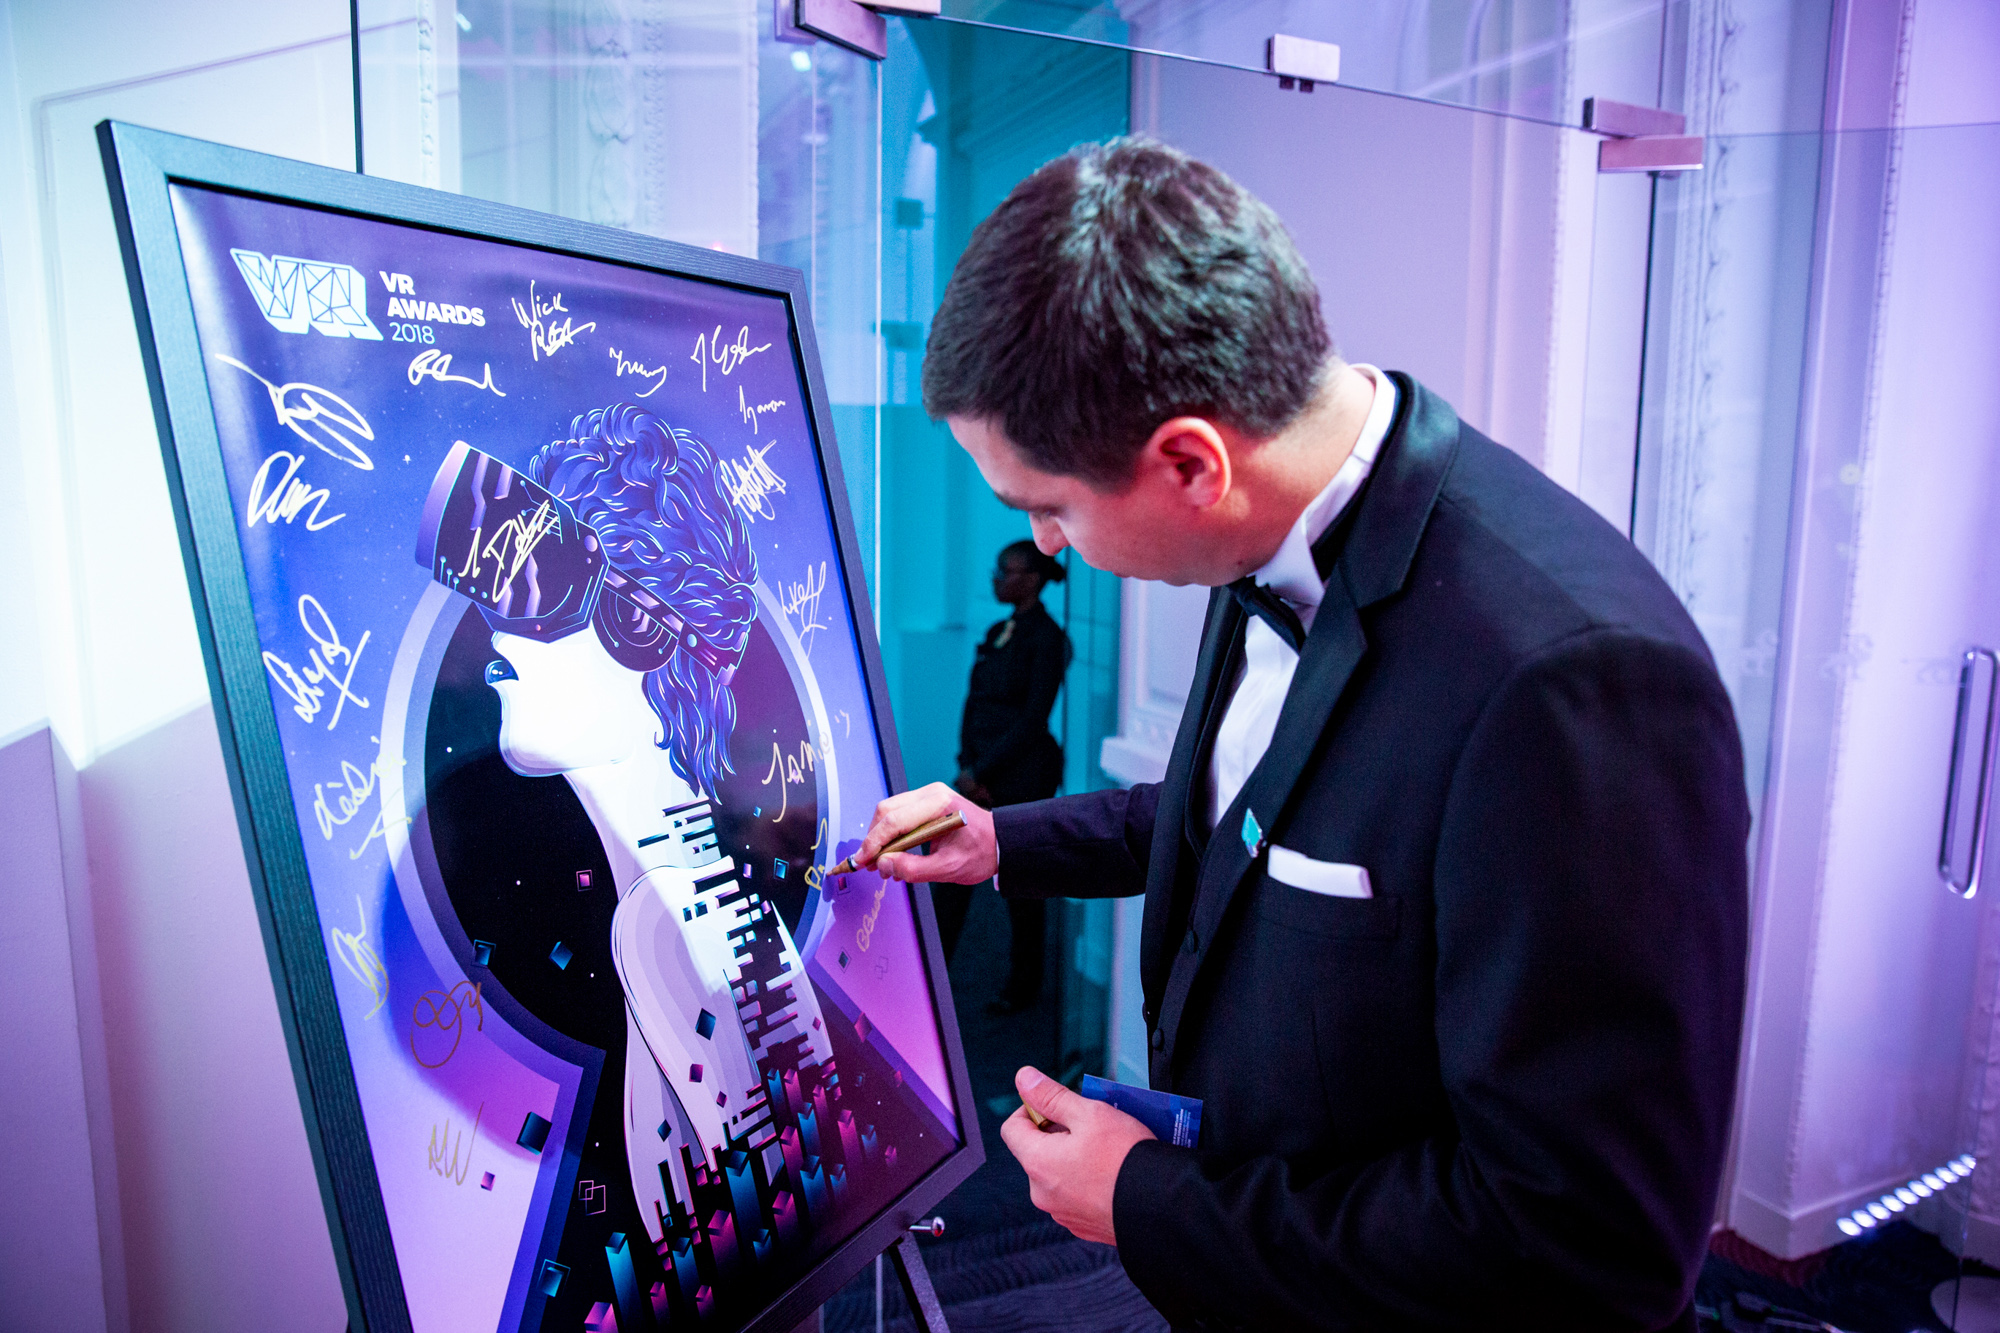 Raccoon_London_VR_Awards_2018_Event_Photography-7.jpg